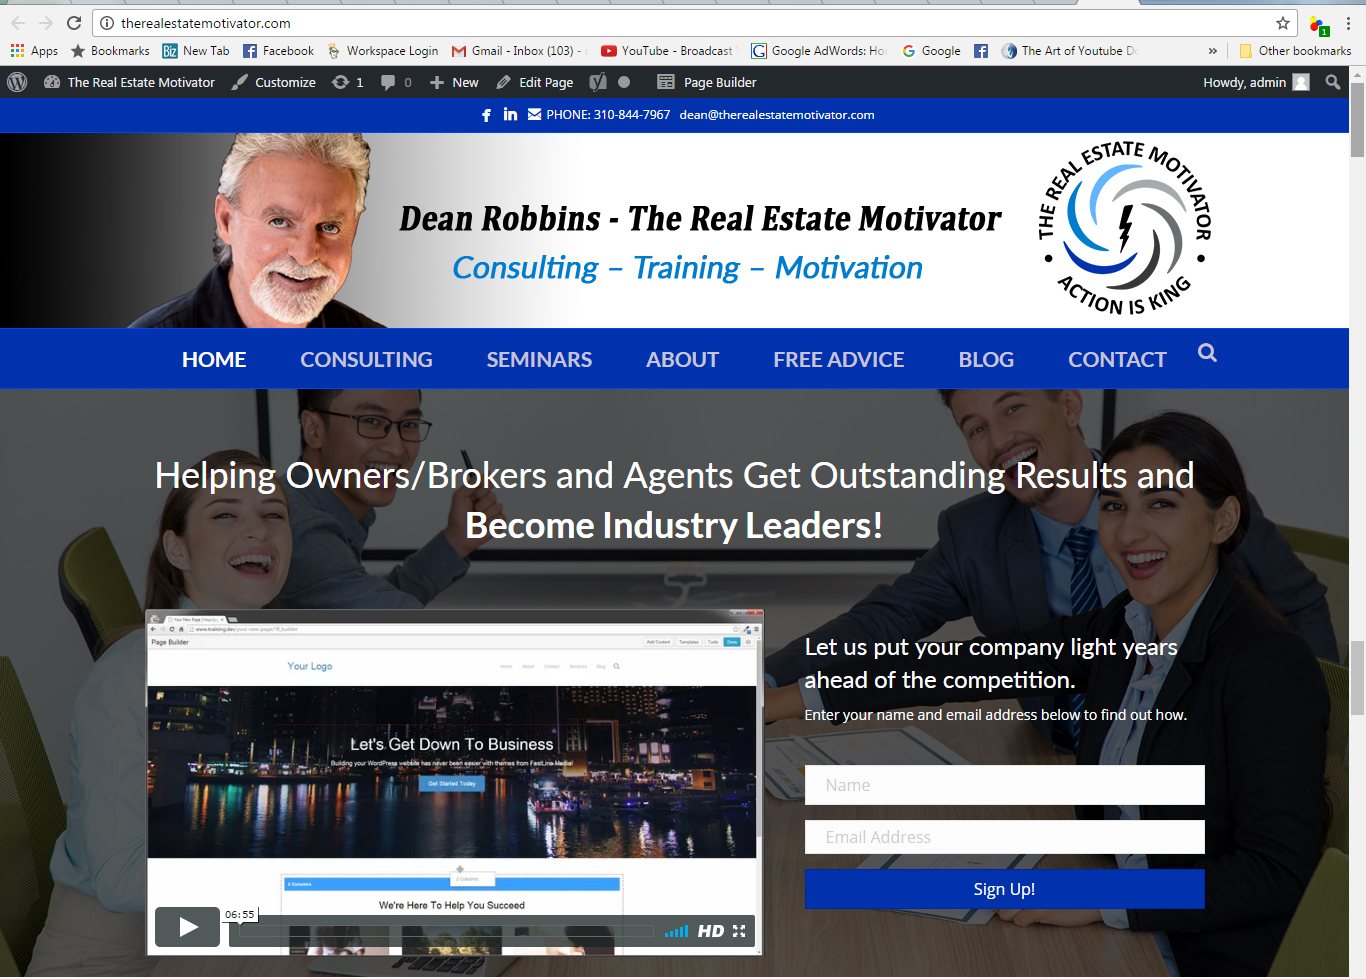 The Real Estate Motivator Website Design